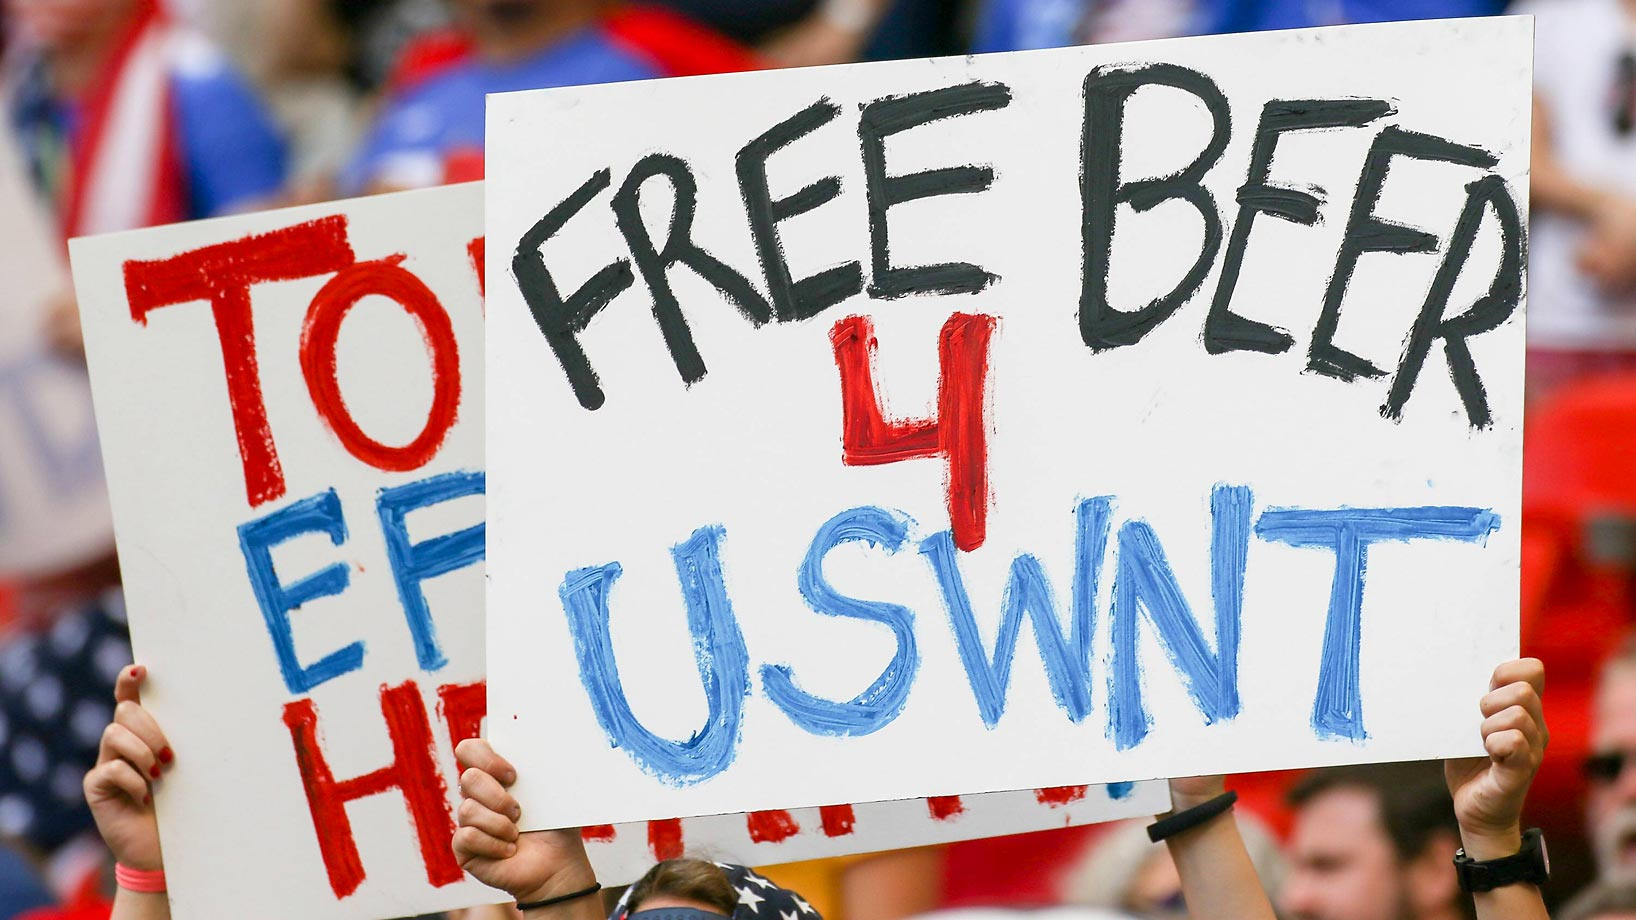 Free Beer 4 USWNT sign at the World Cup final.